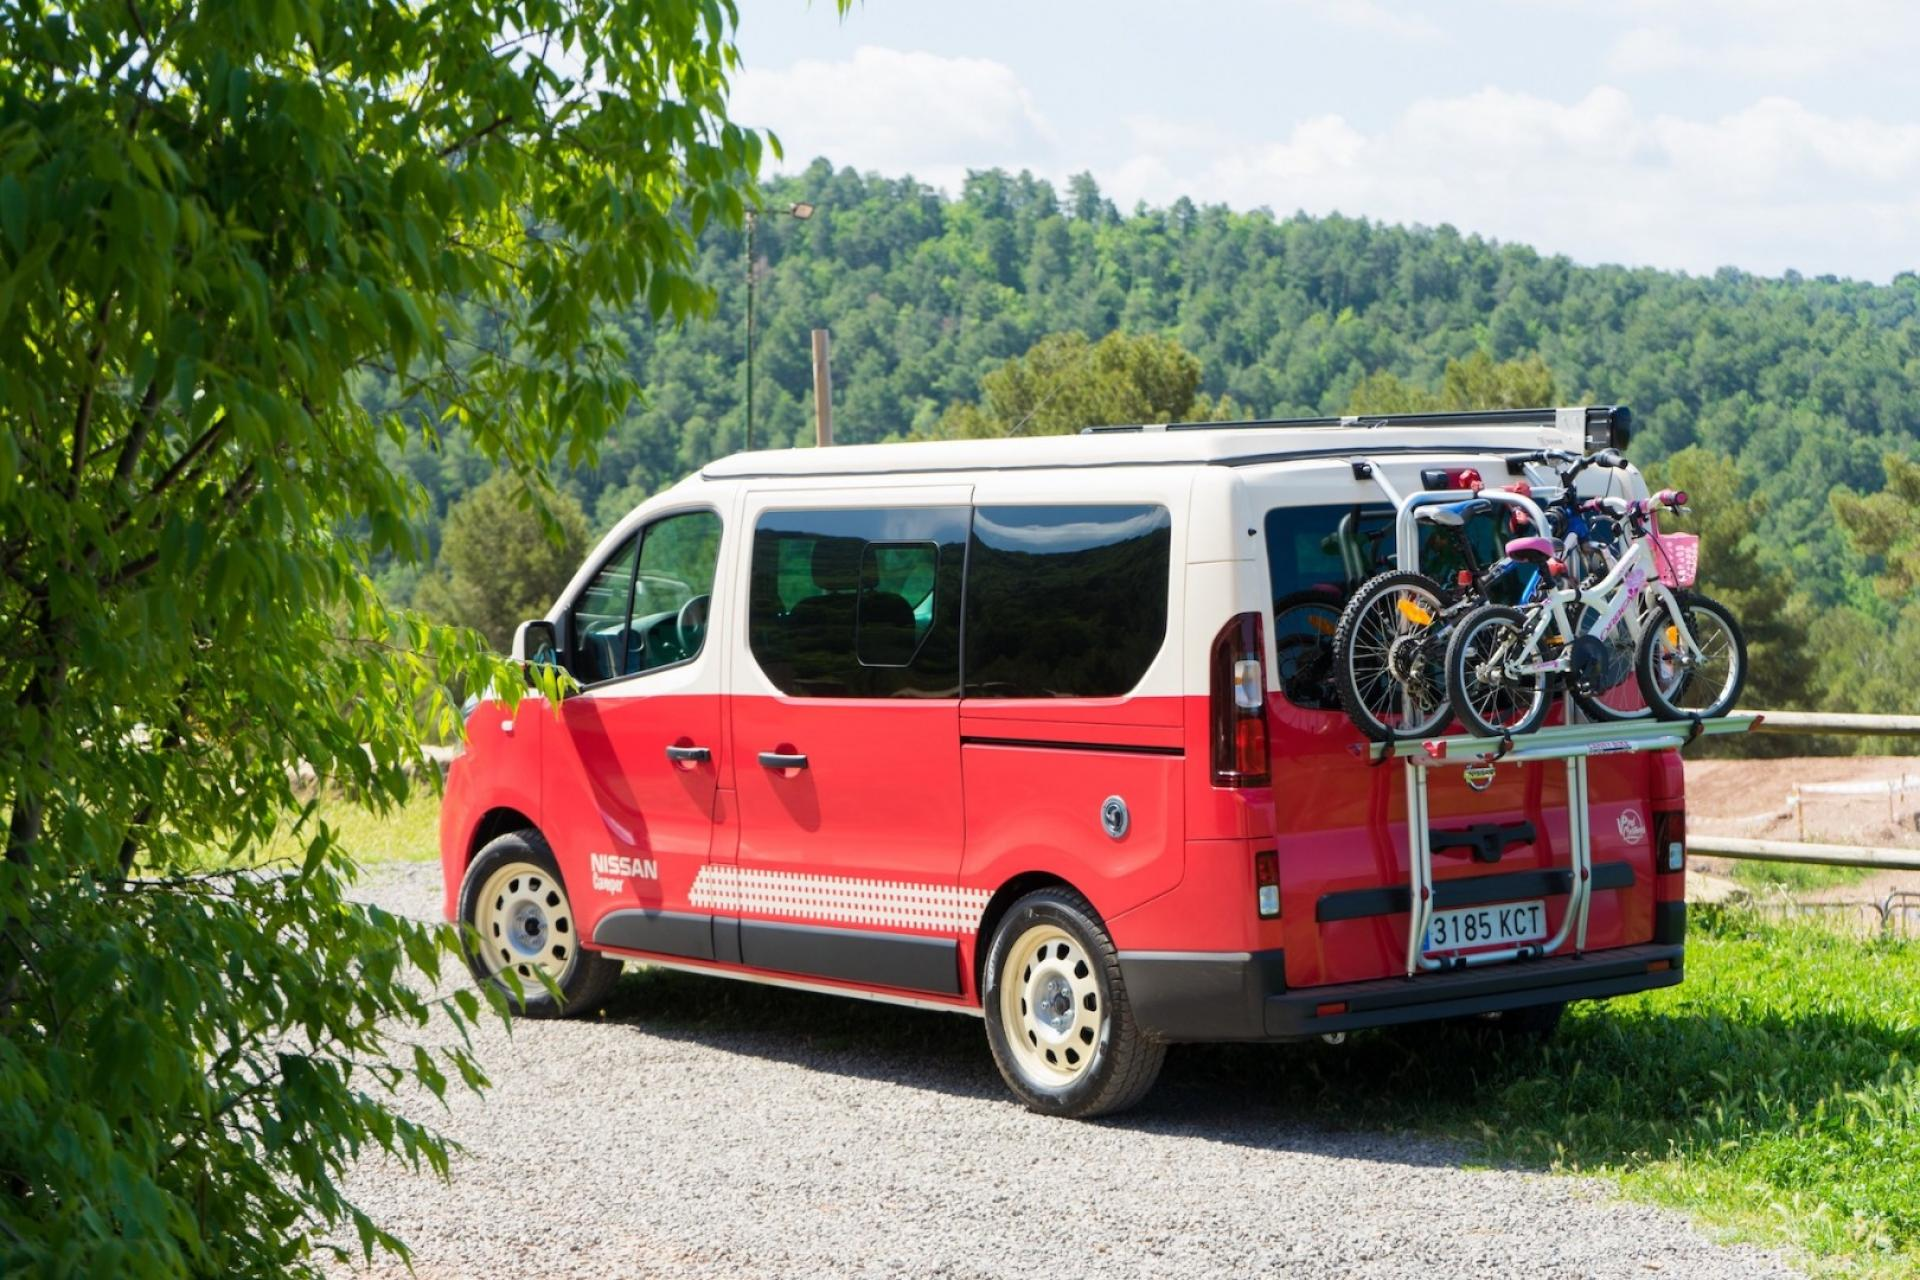 Nissan camper motor show madryt hellocamping news